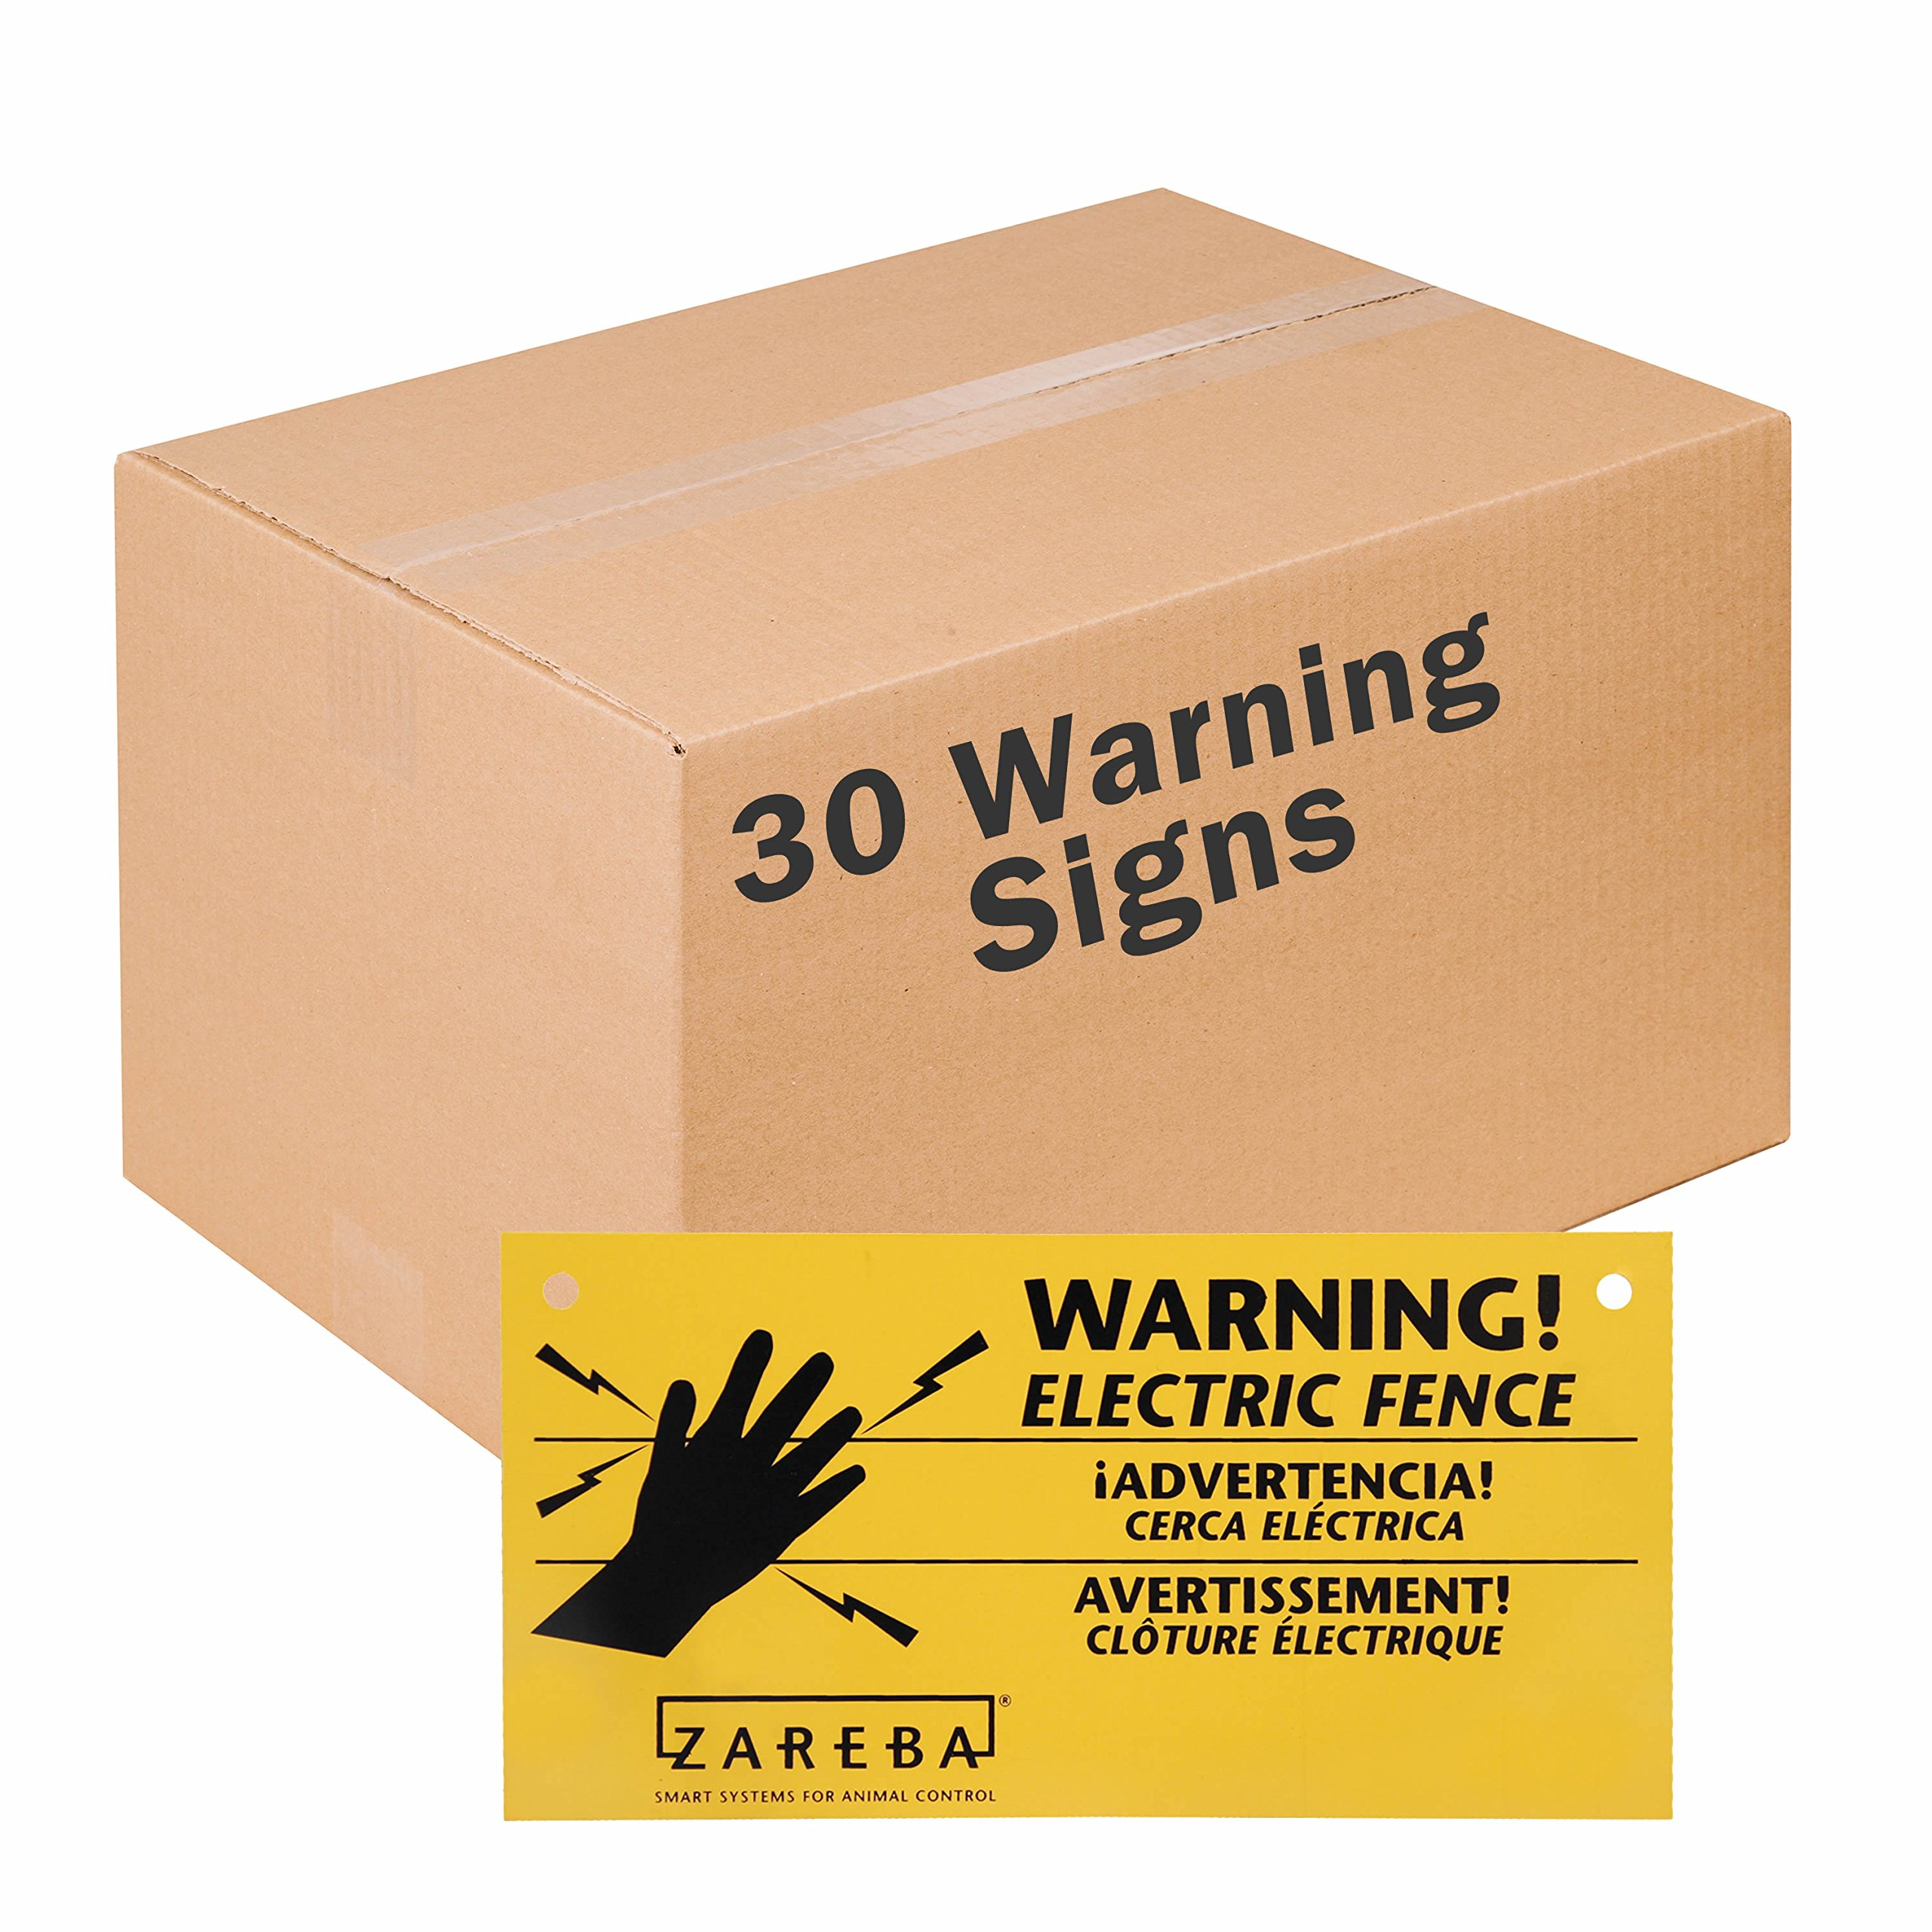 Zareba WS3 Electric Fence Warning (Pack), 30 Signs